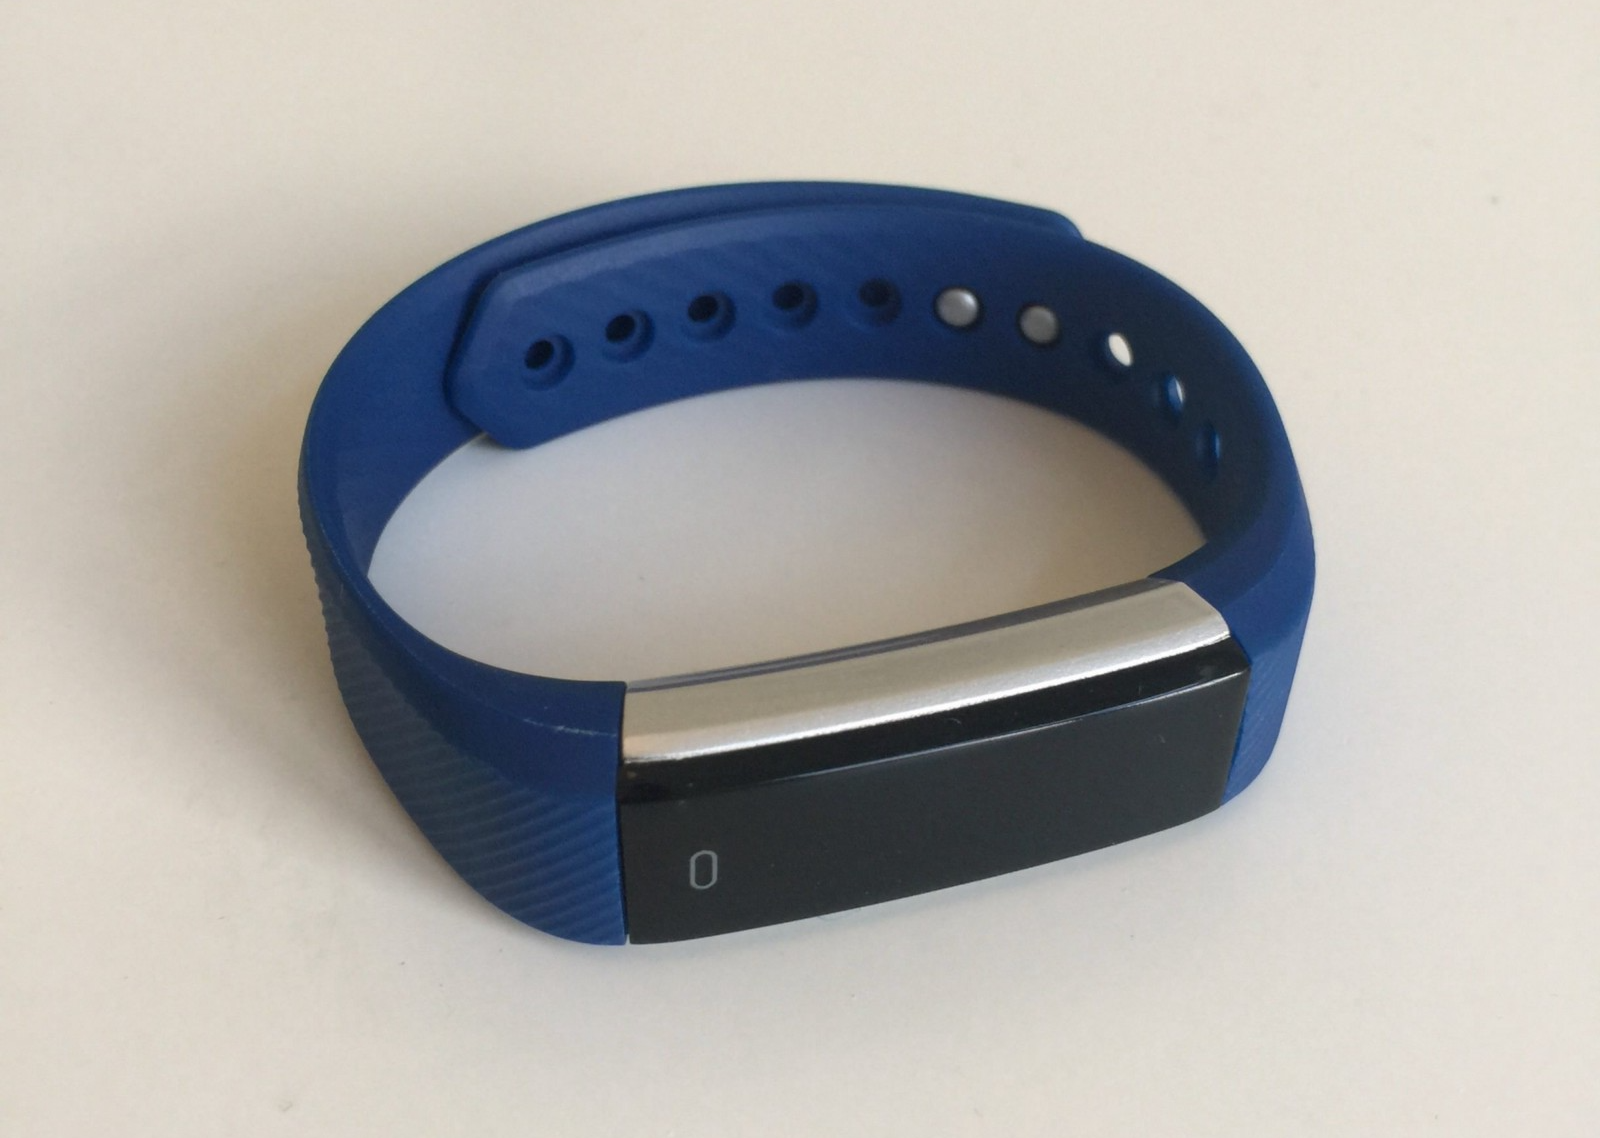 Good News! Those Dirt Cheap Fitness Tracker Bracelets Are